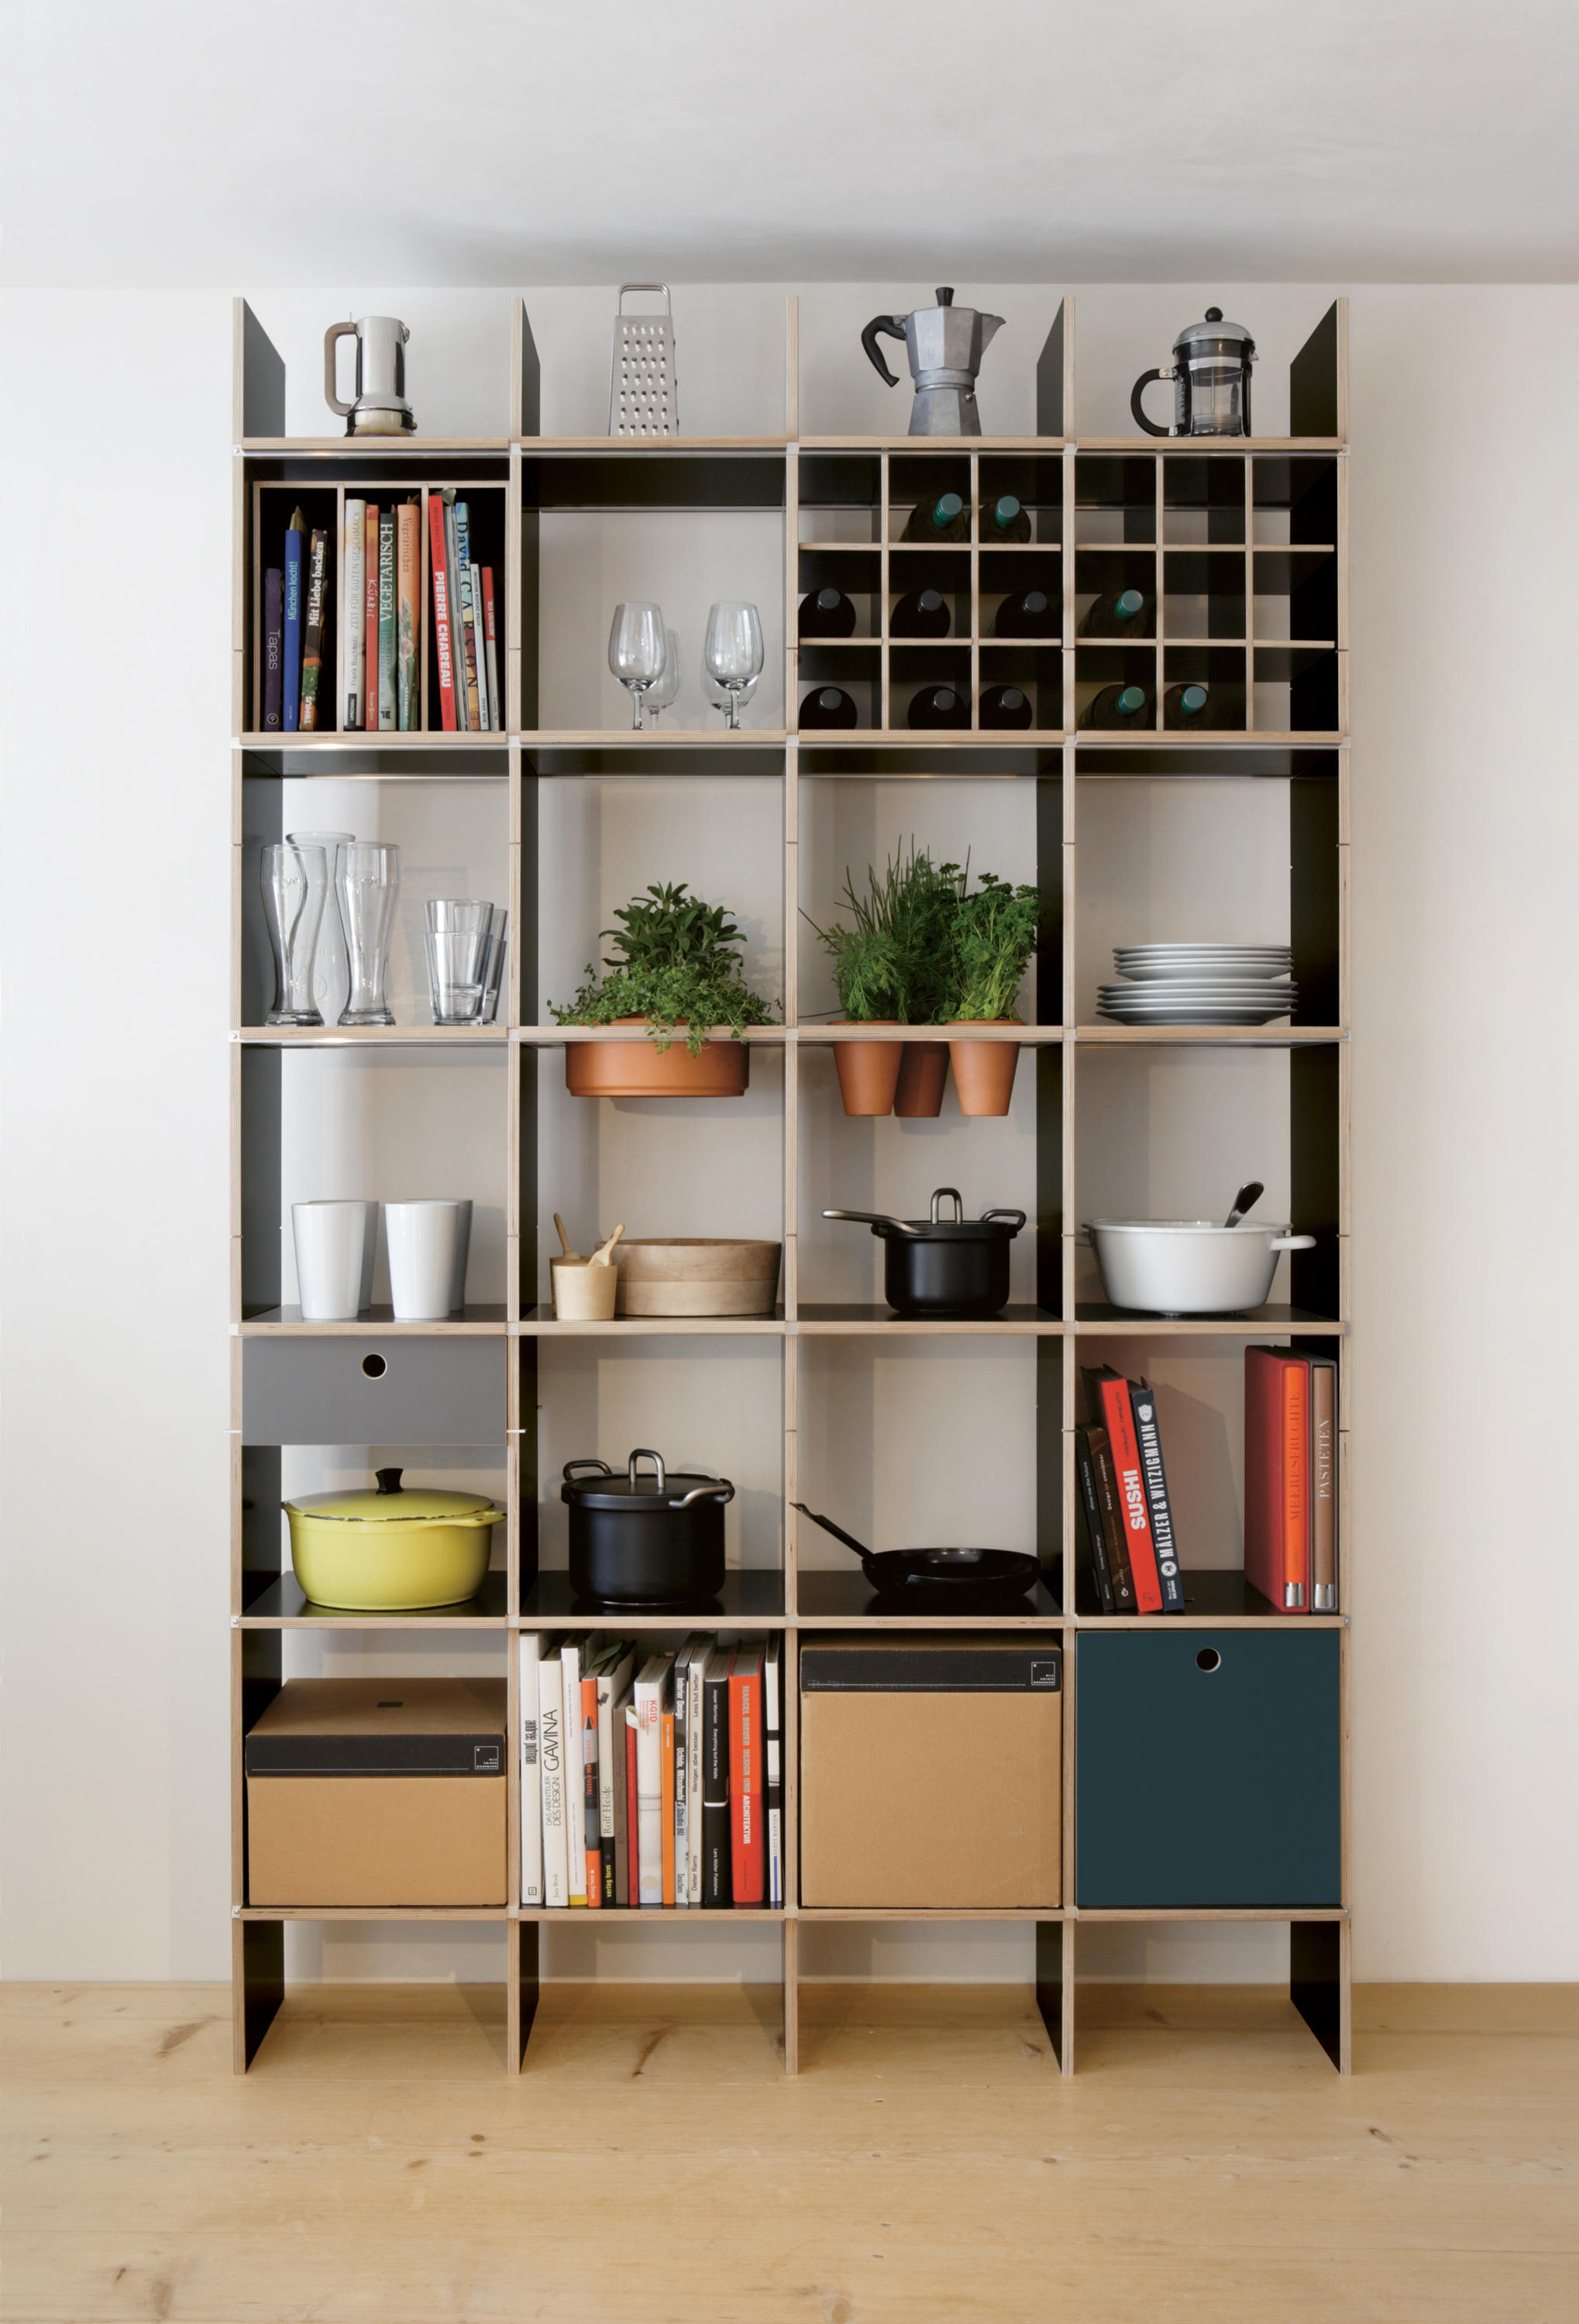 fnp office shelving systems from moormann architonic. Black Bedroom Furniture Sets. Home Design Ideas